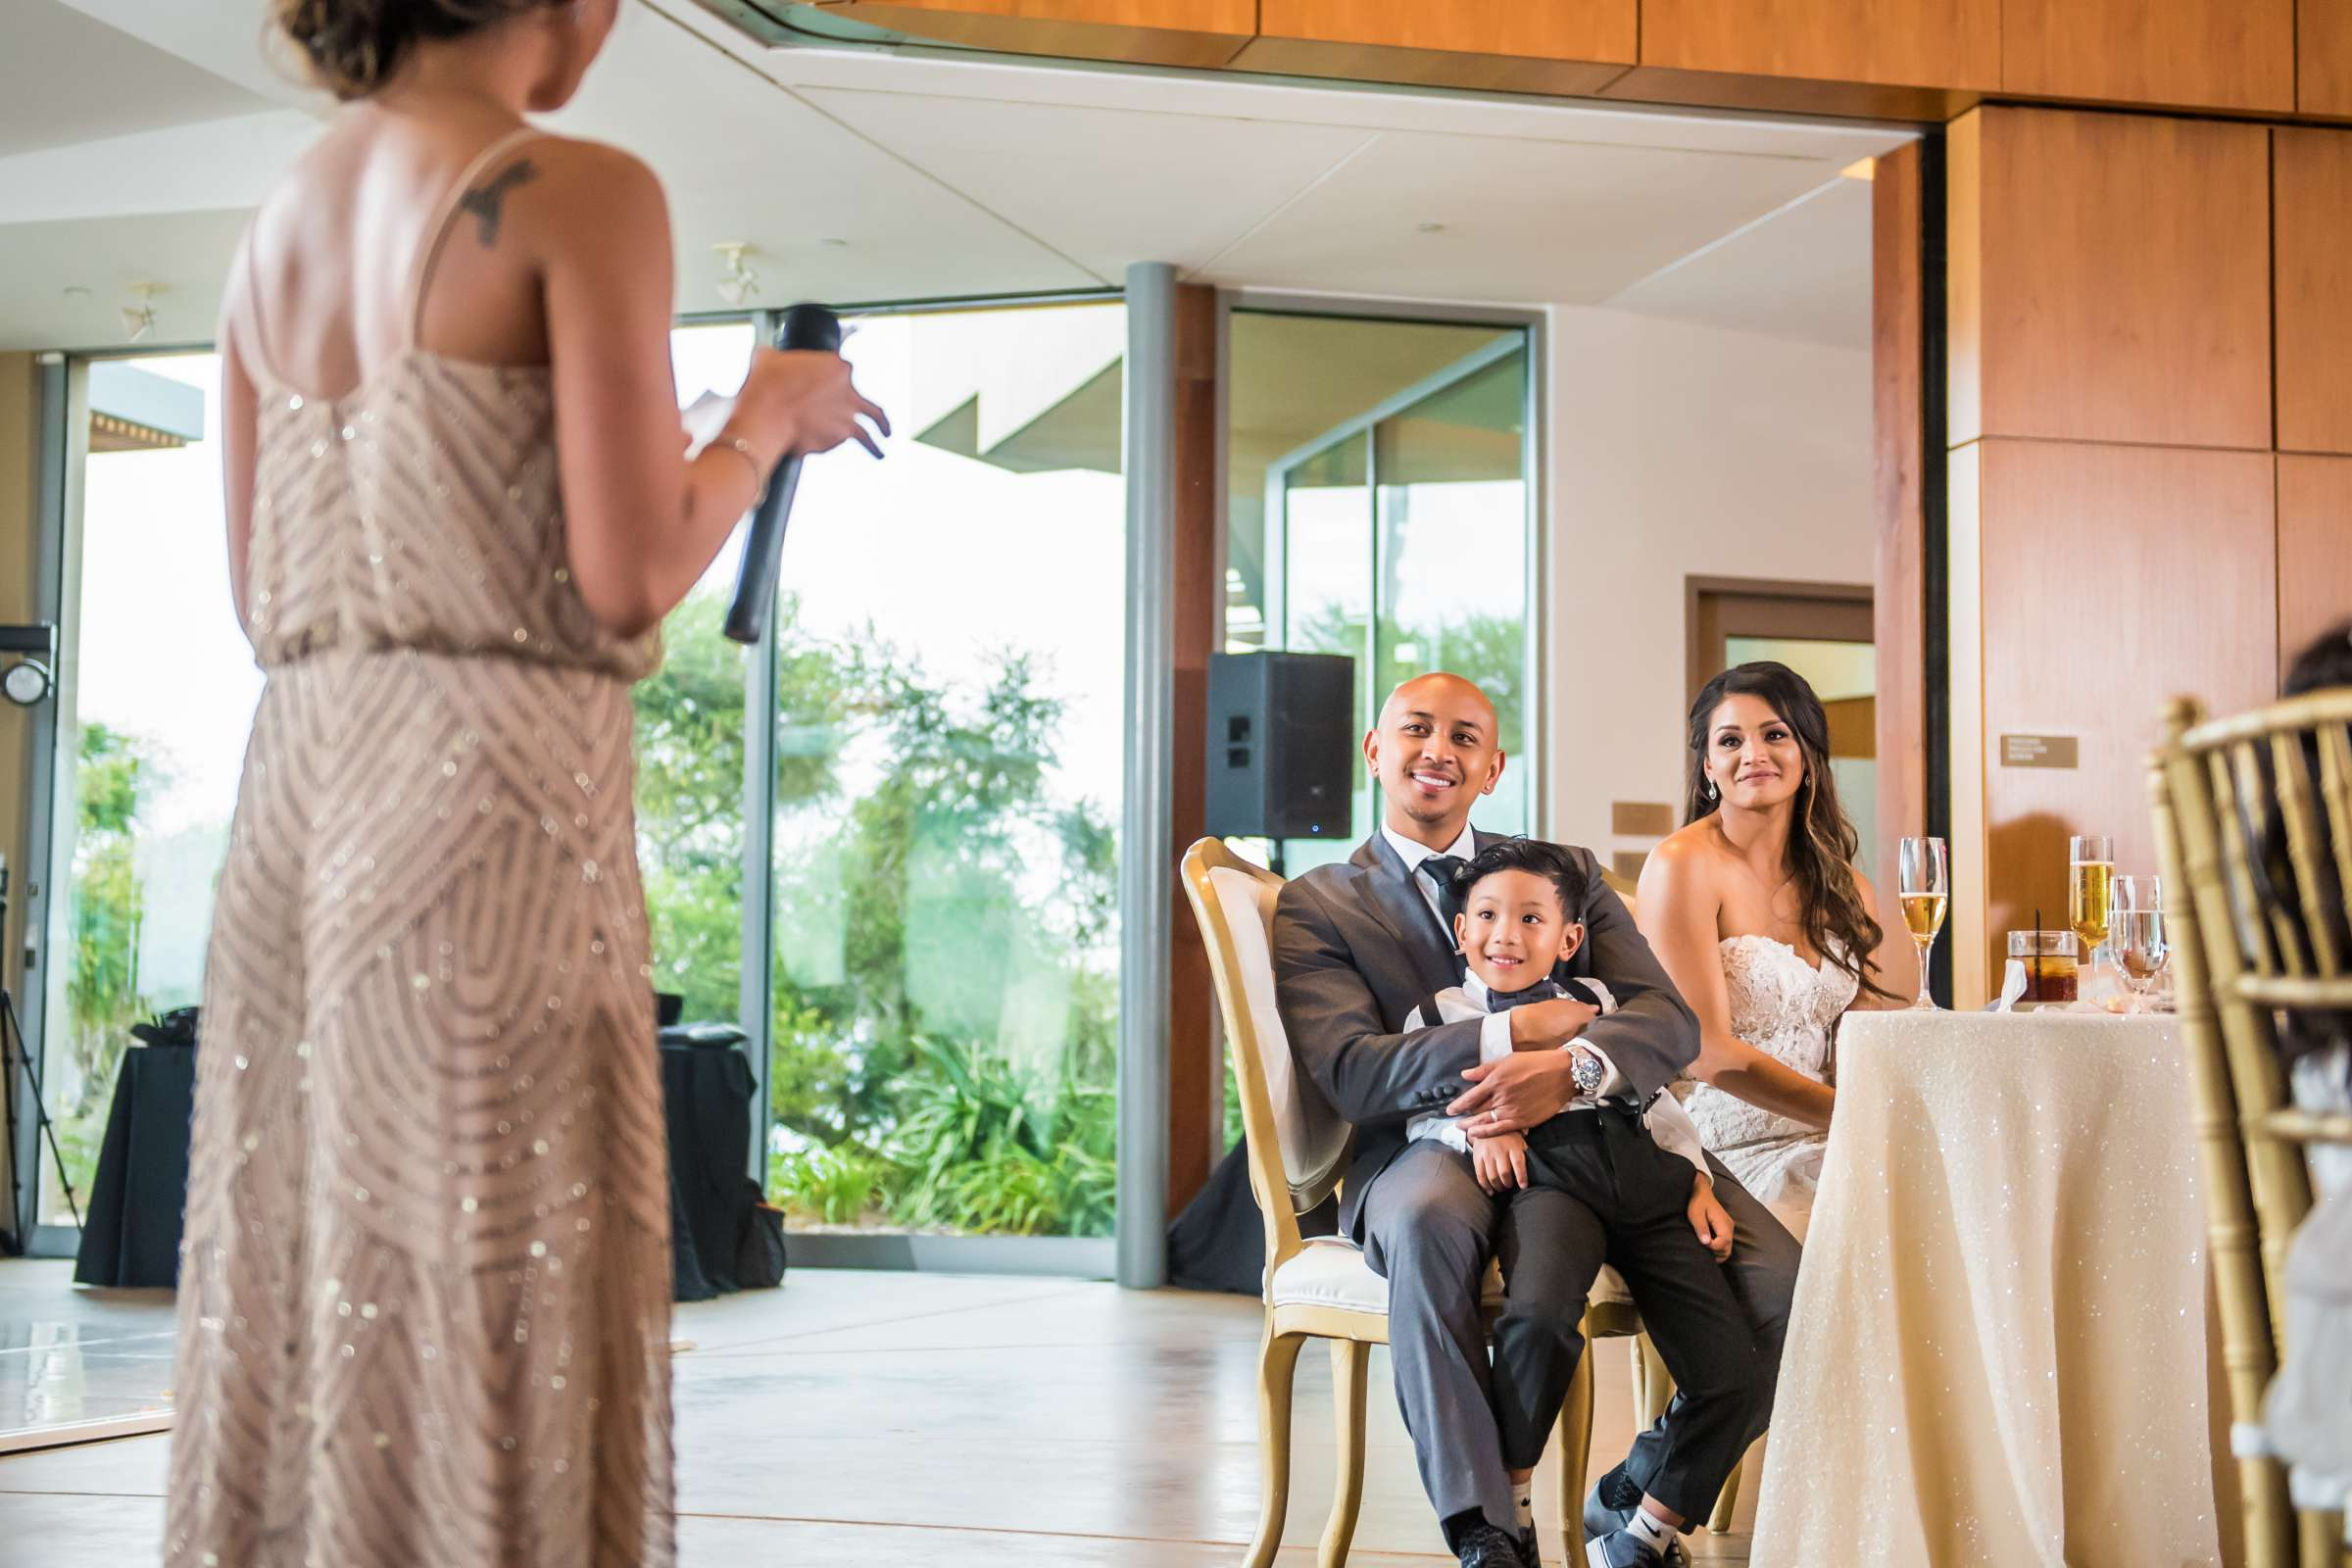 Scripps Seaside Forum Wedding coordinated by Lavish Weddings, Cindy and Justin Wedding Photo #381859 by True Photography